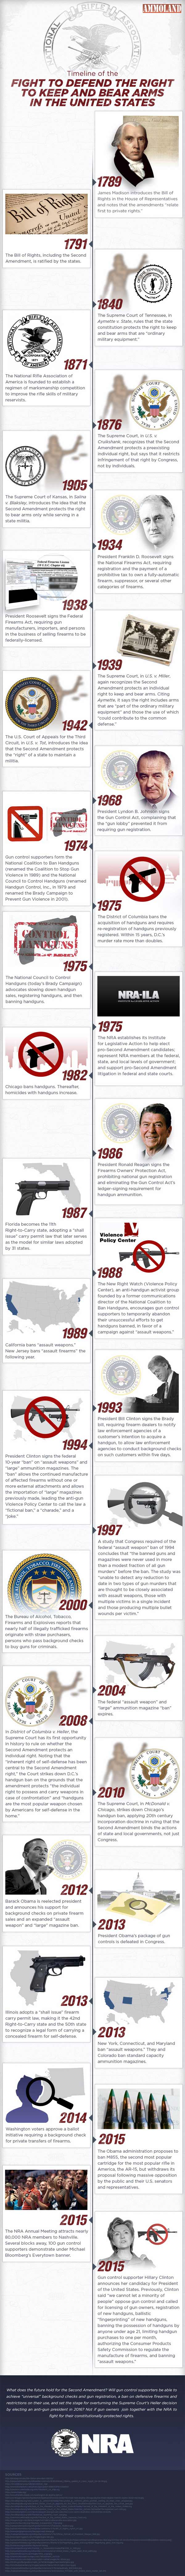 Timeline of the Right to Keep and Bear Arms Fight in the United States